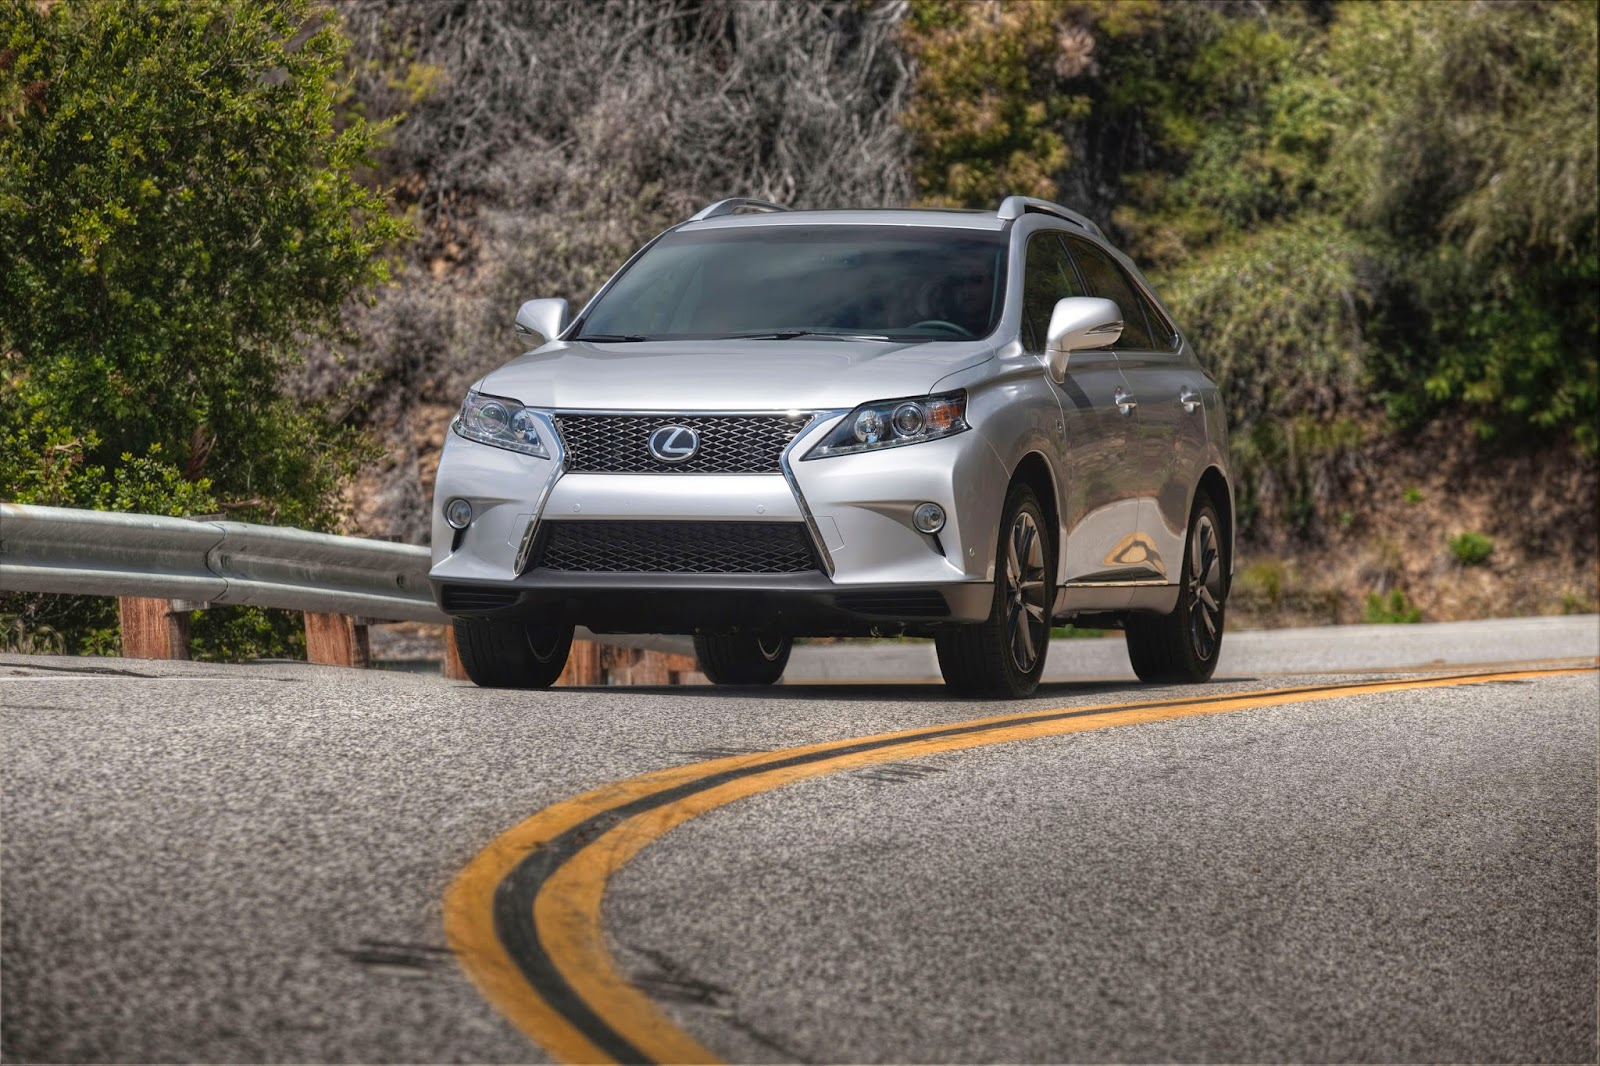 Front 3/4 view of 2014 Lexus RX350 F-Sport